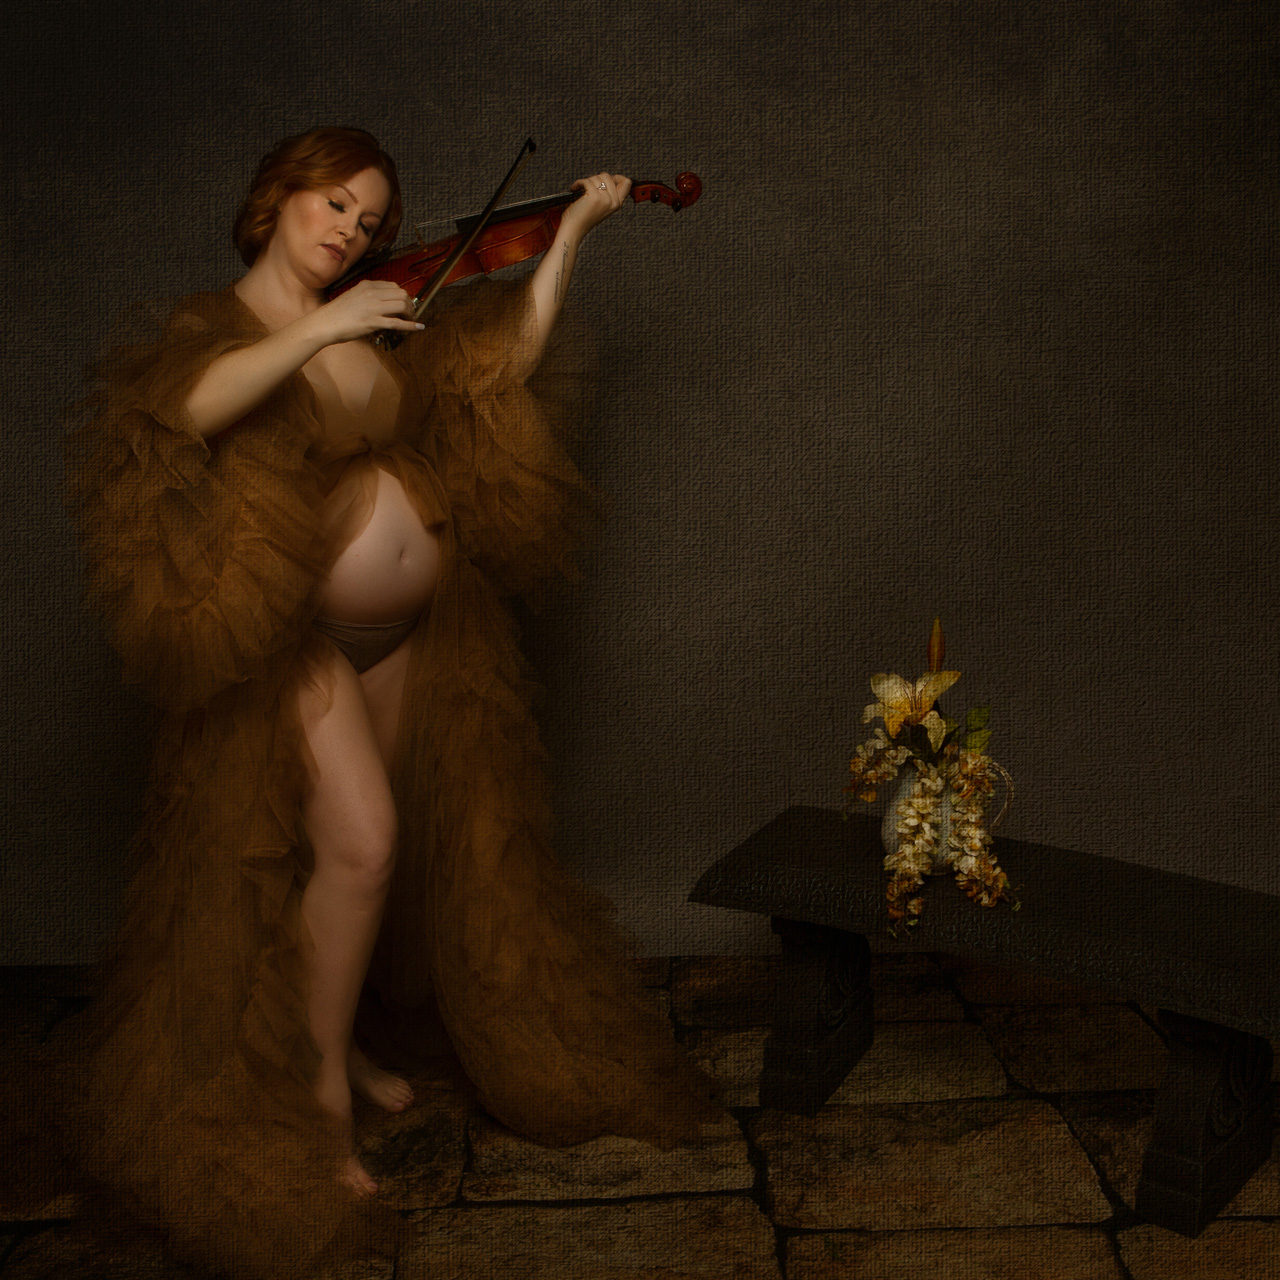 Beautiful maternity portrait by Leona Darnell showing a mother to be in a tulle robe playing the violin.